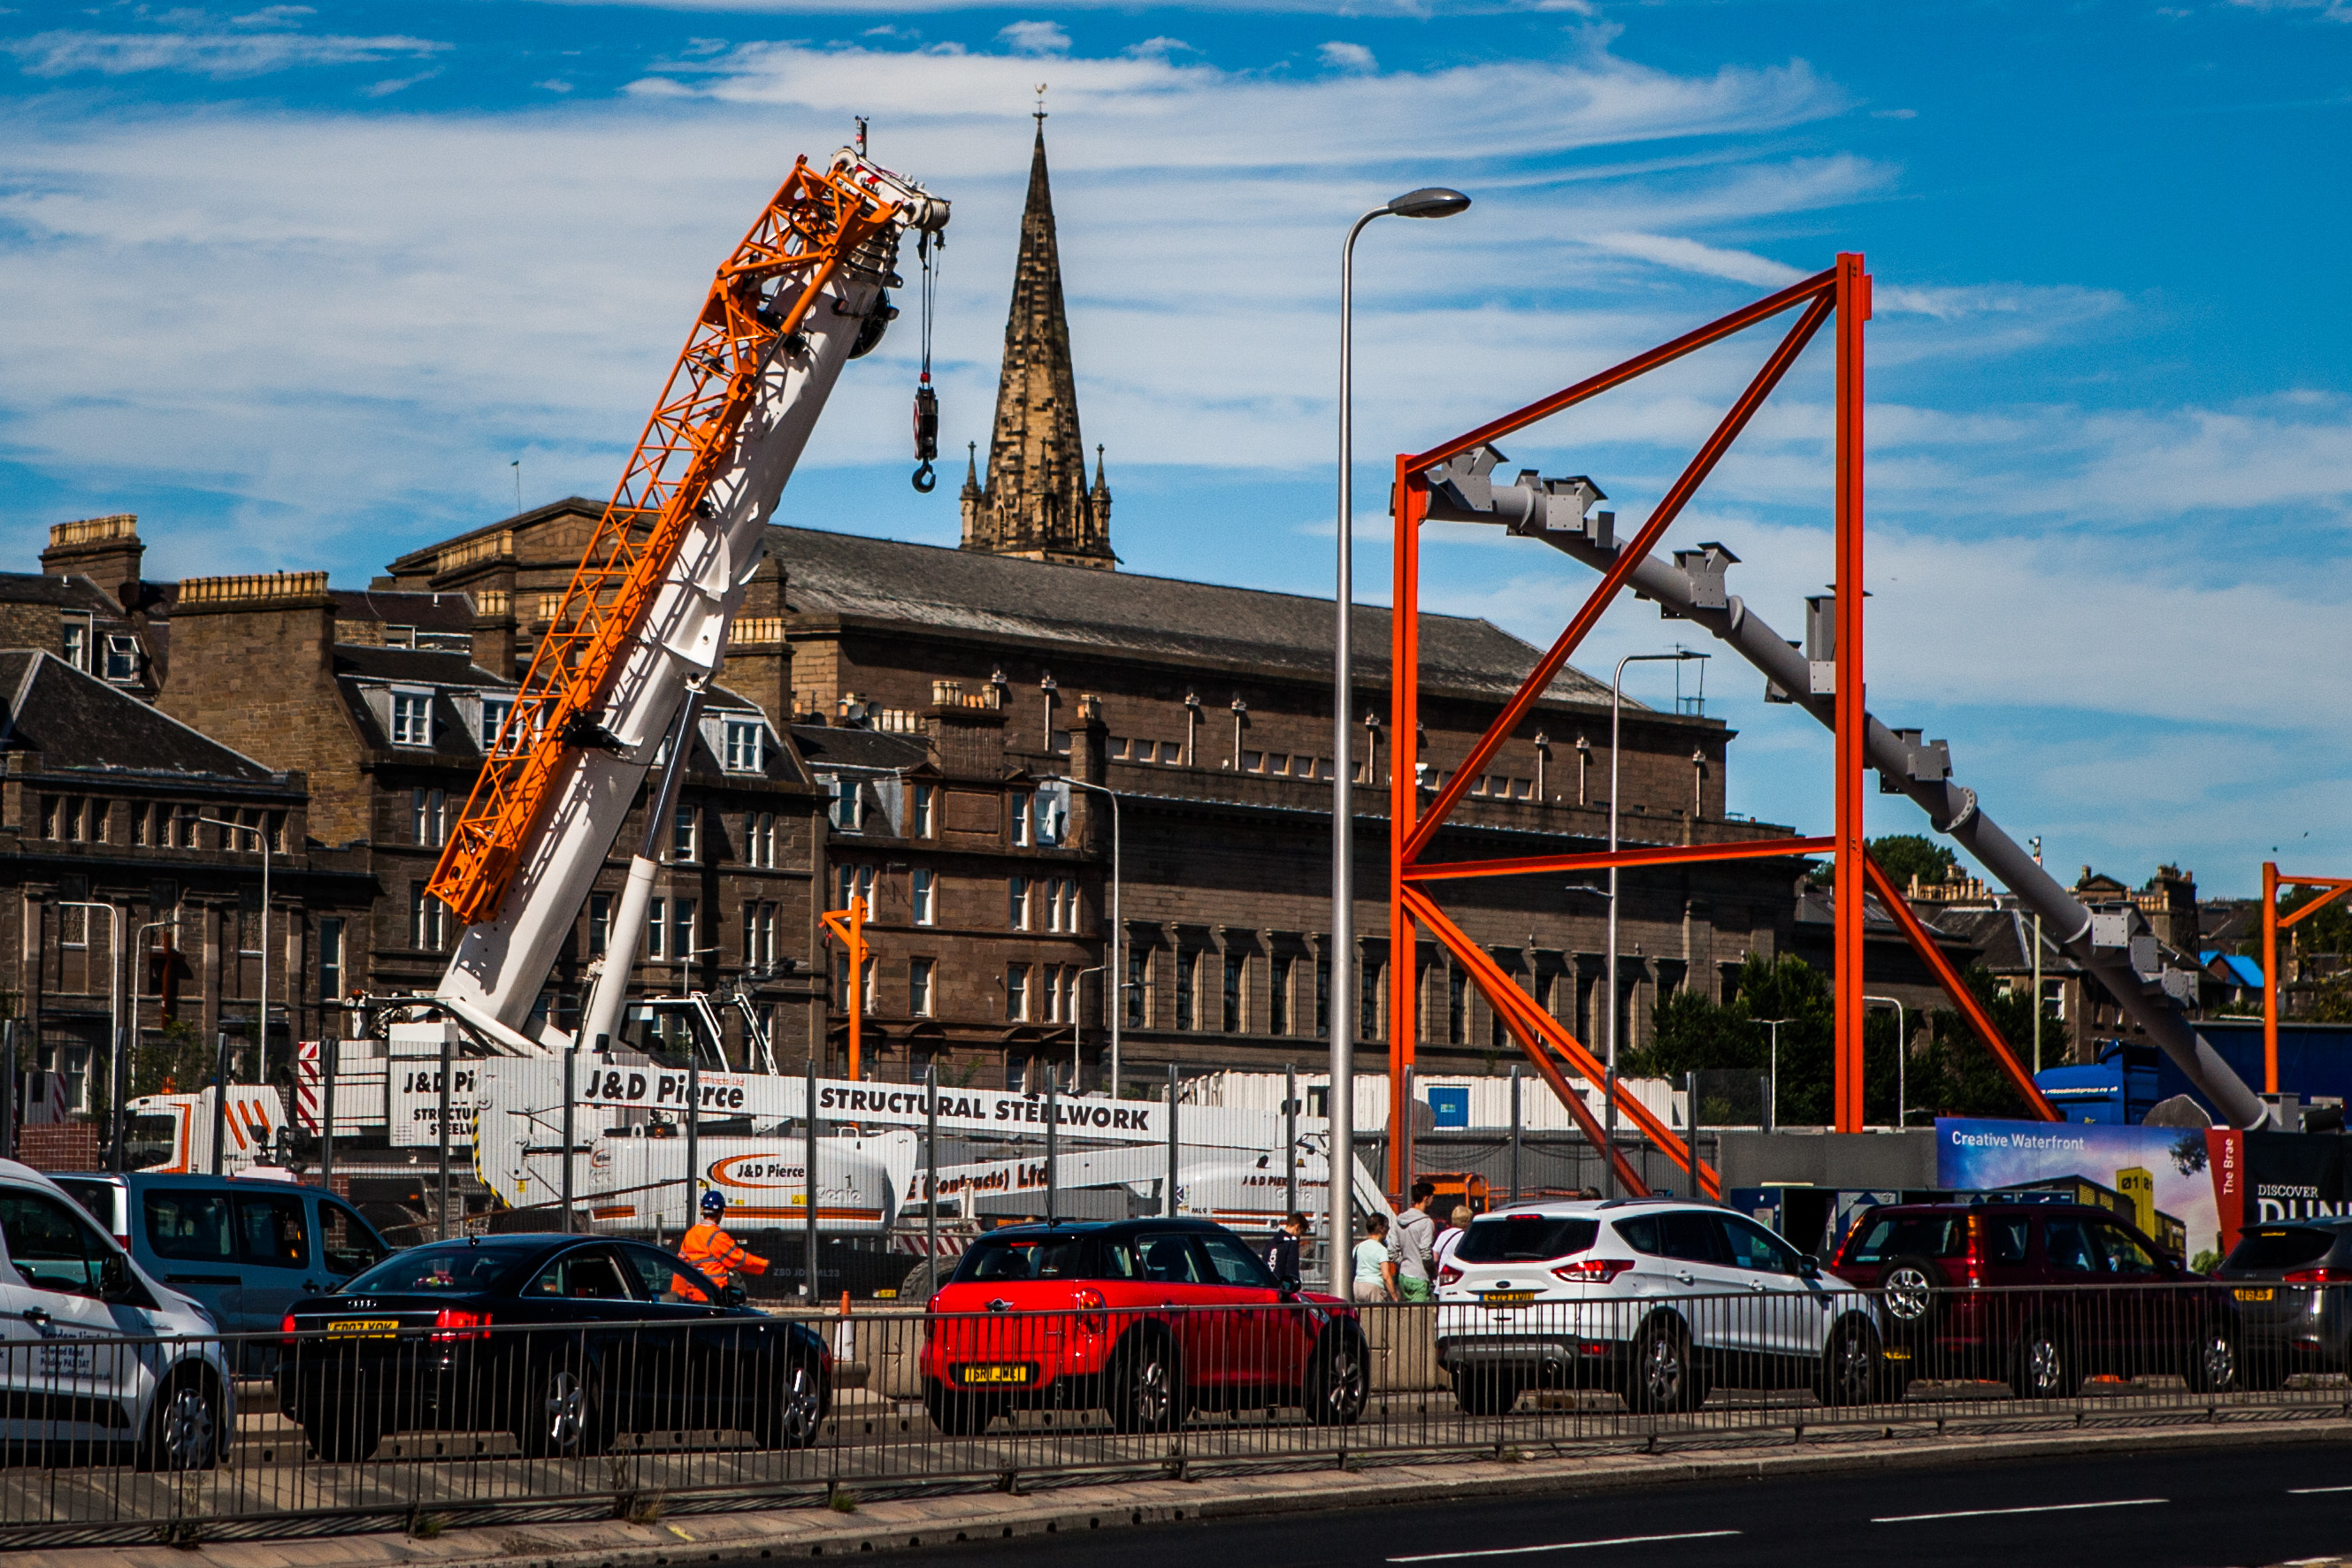 The new station's steelwork starts to emerge.